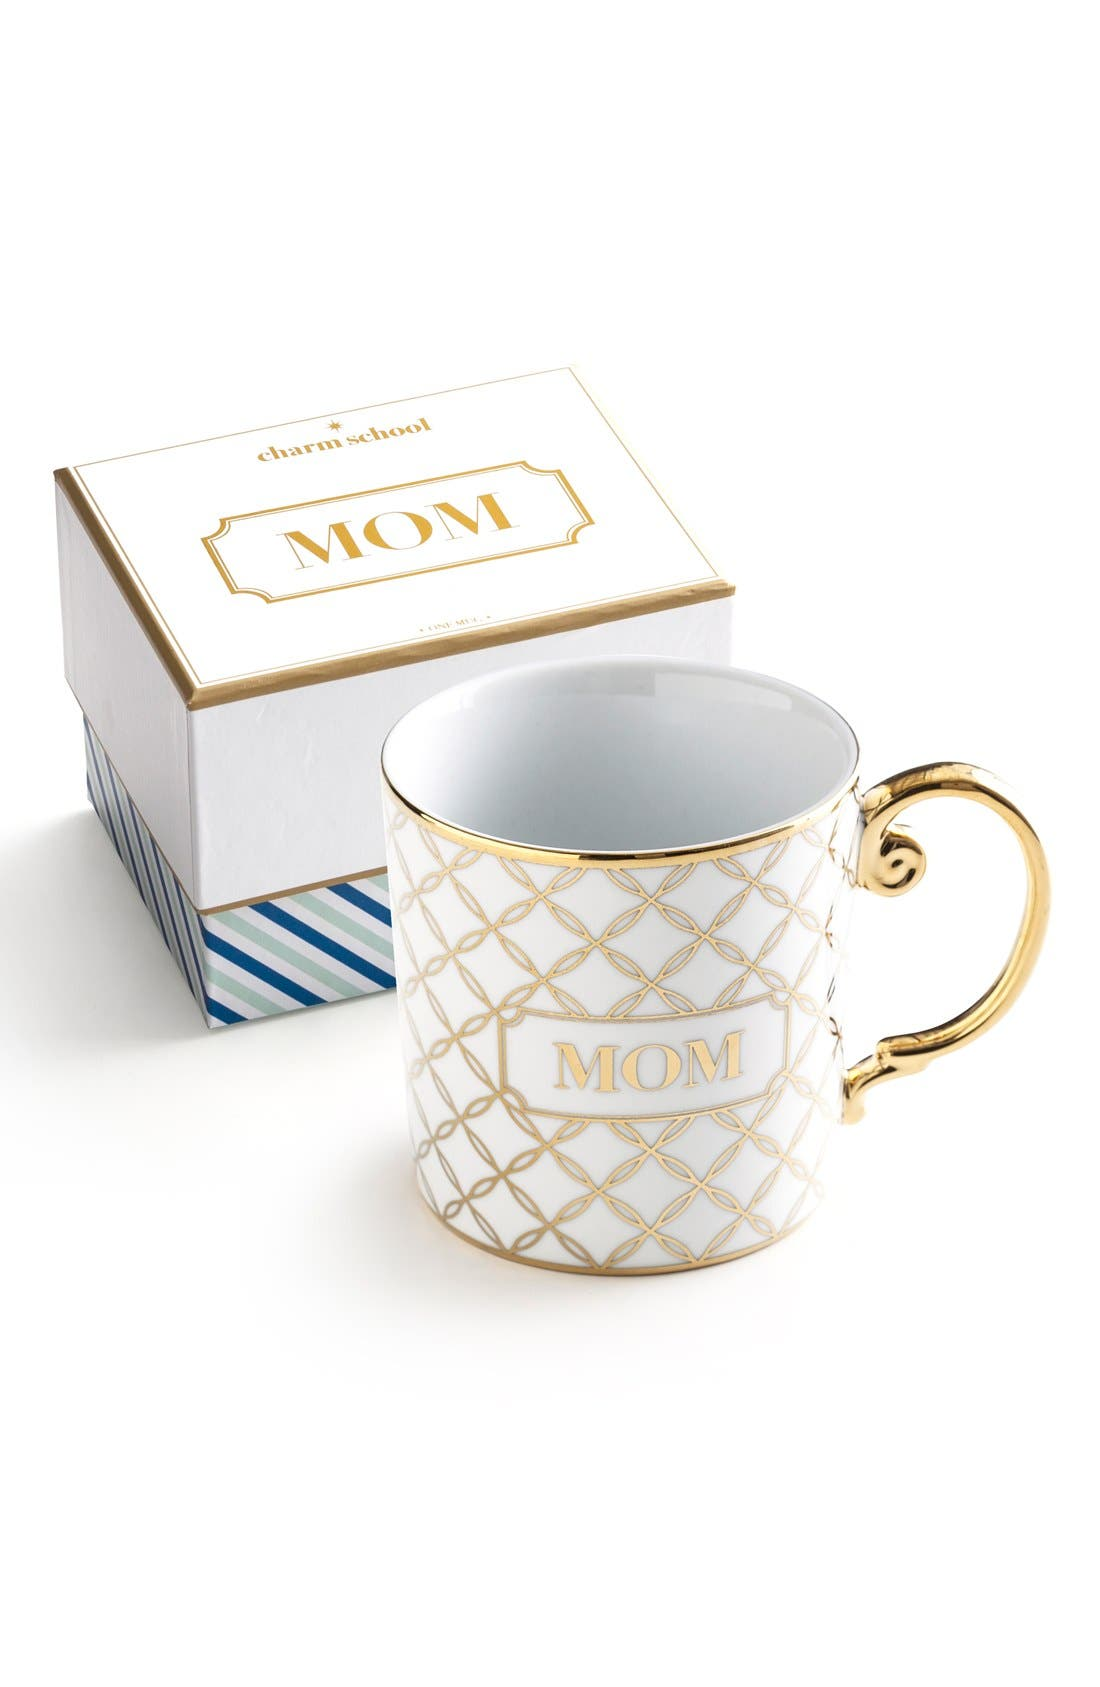 Rosanna 'Mom' Porcelain Coffee Mug